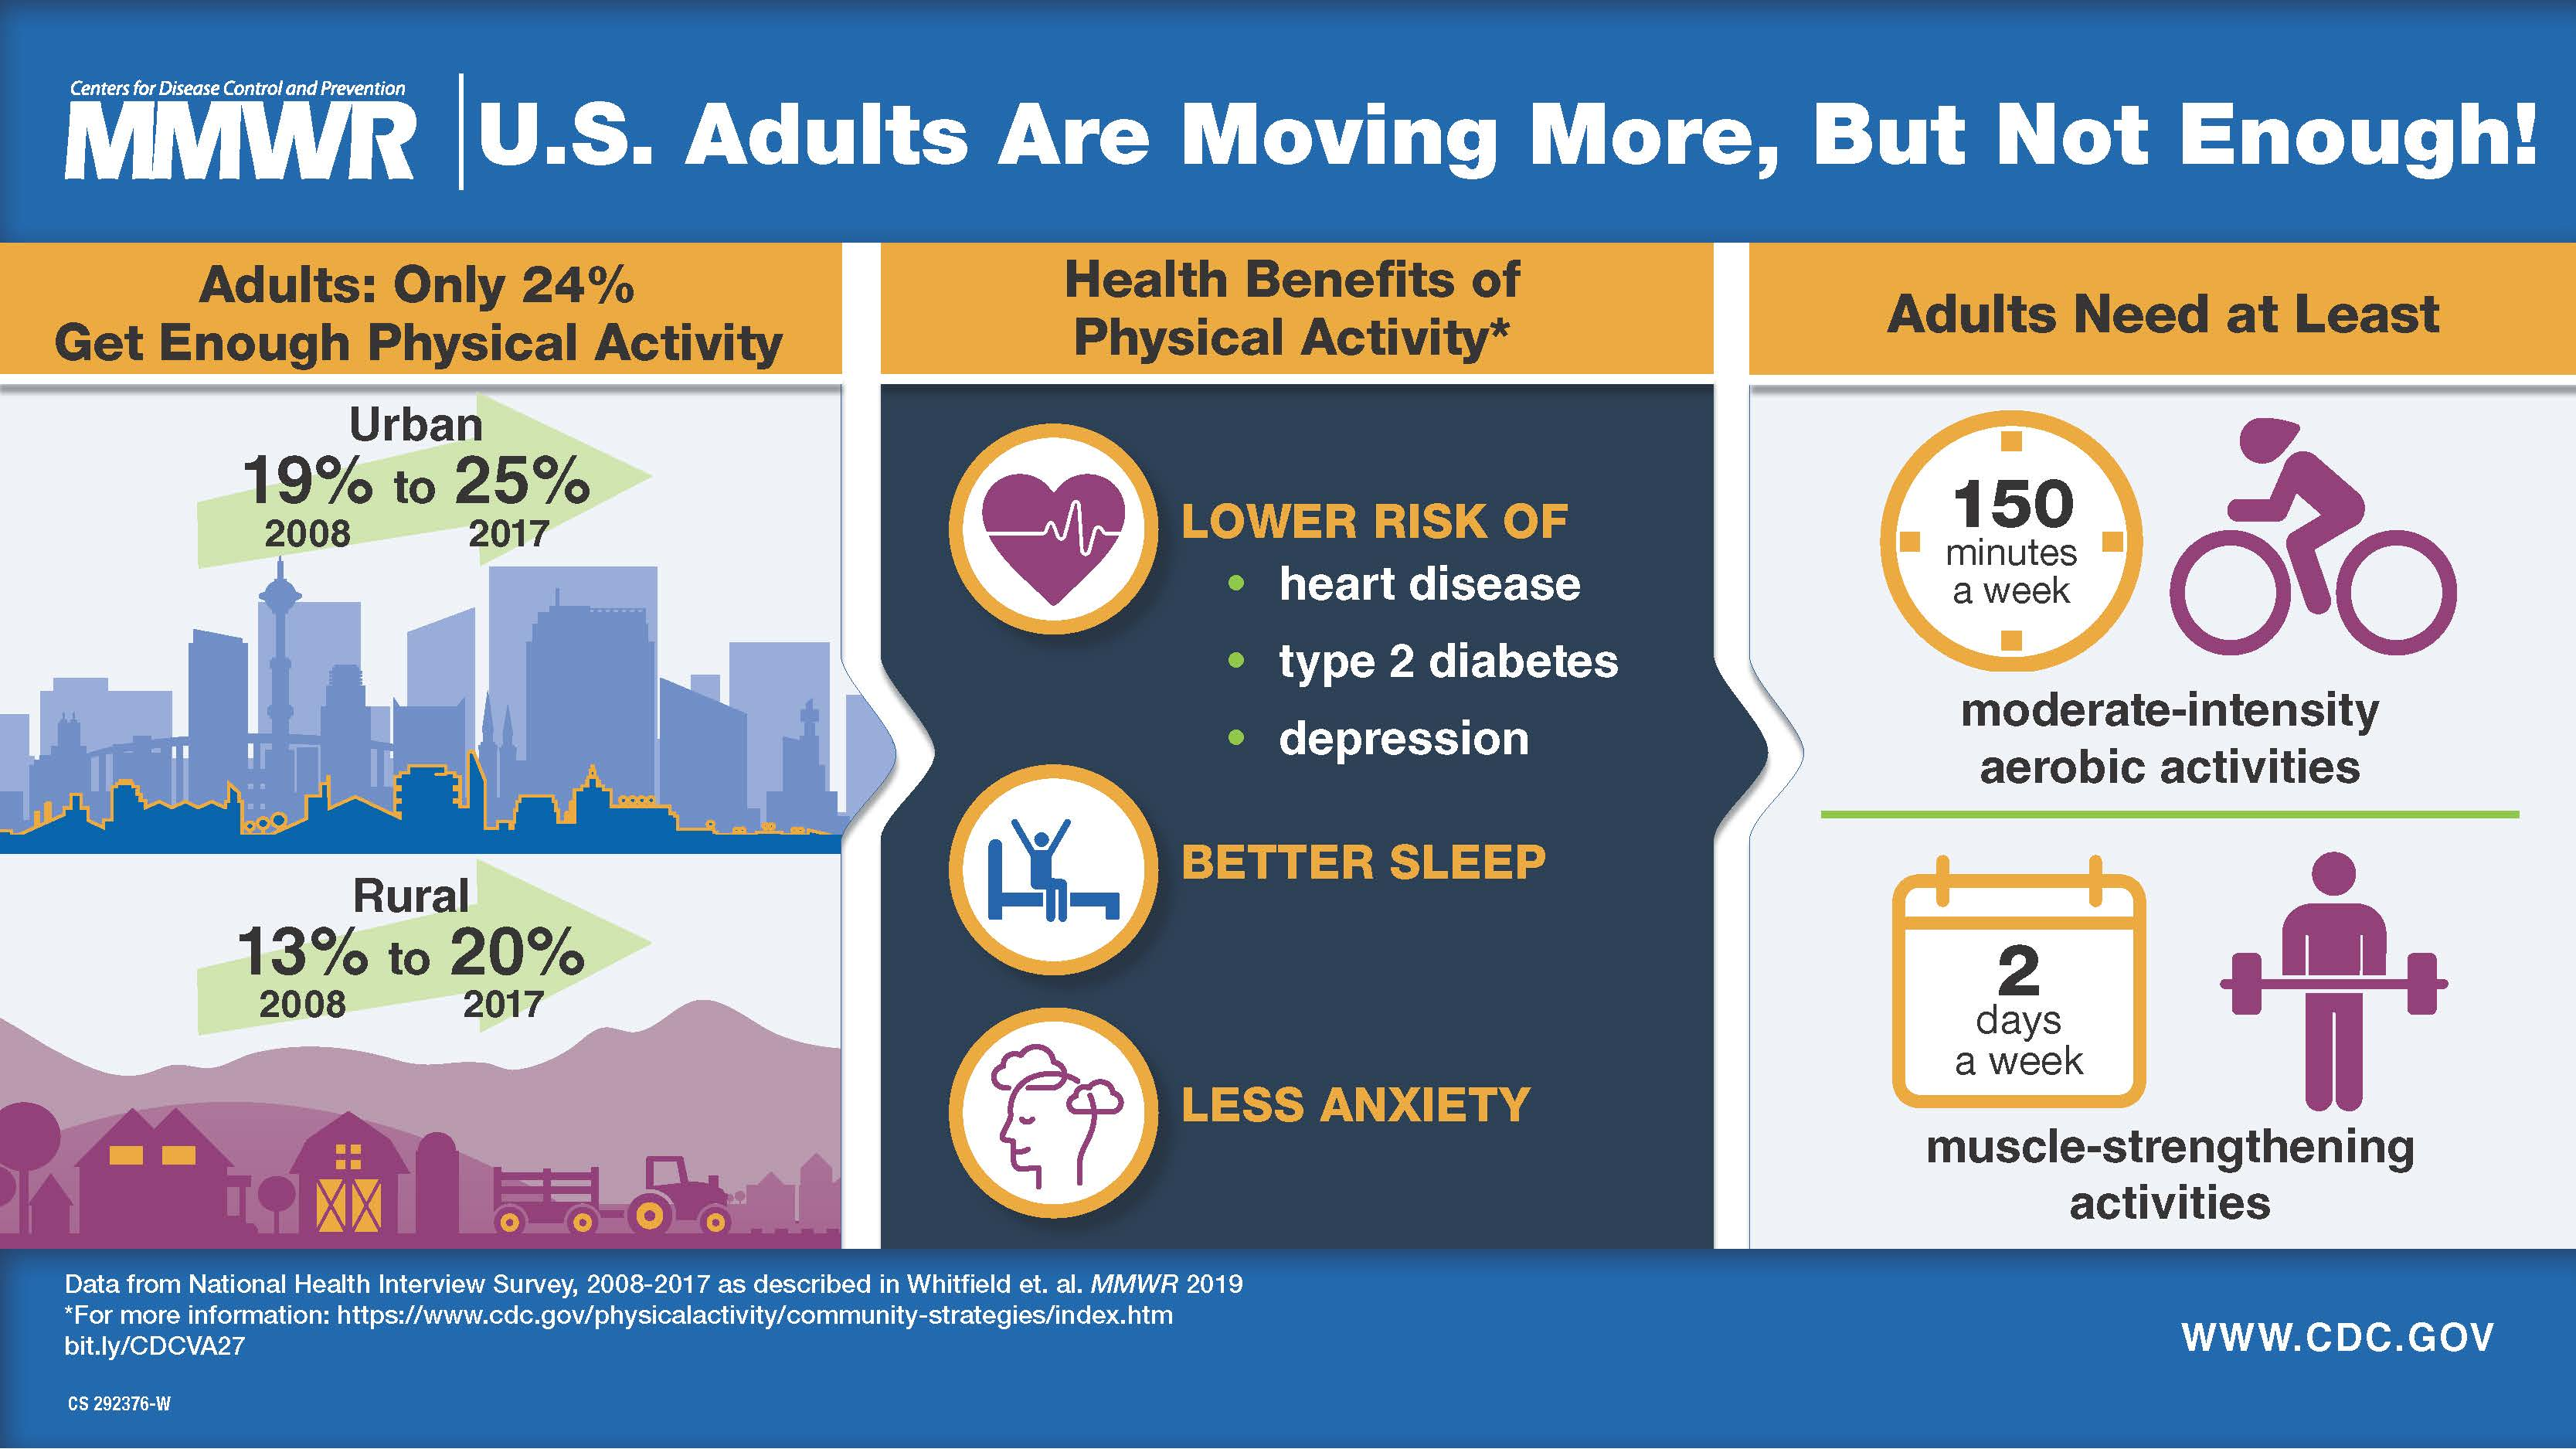 The figure is a Visual Abstract on adult physical activity; it urges communities to make activity easy for all.